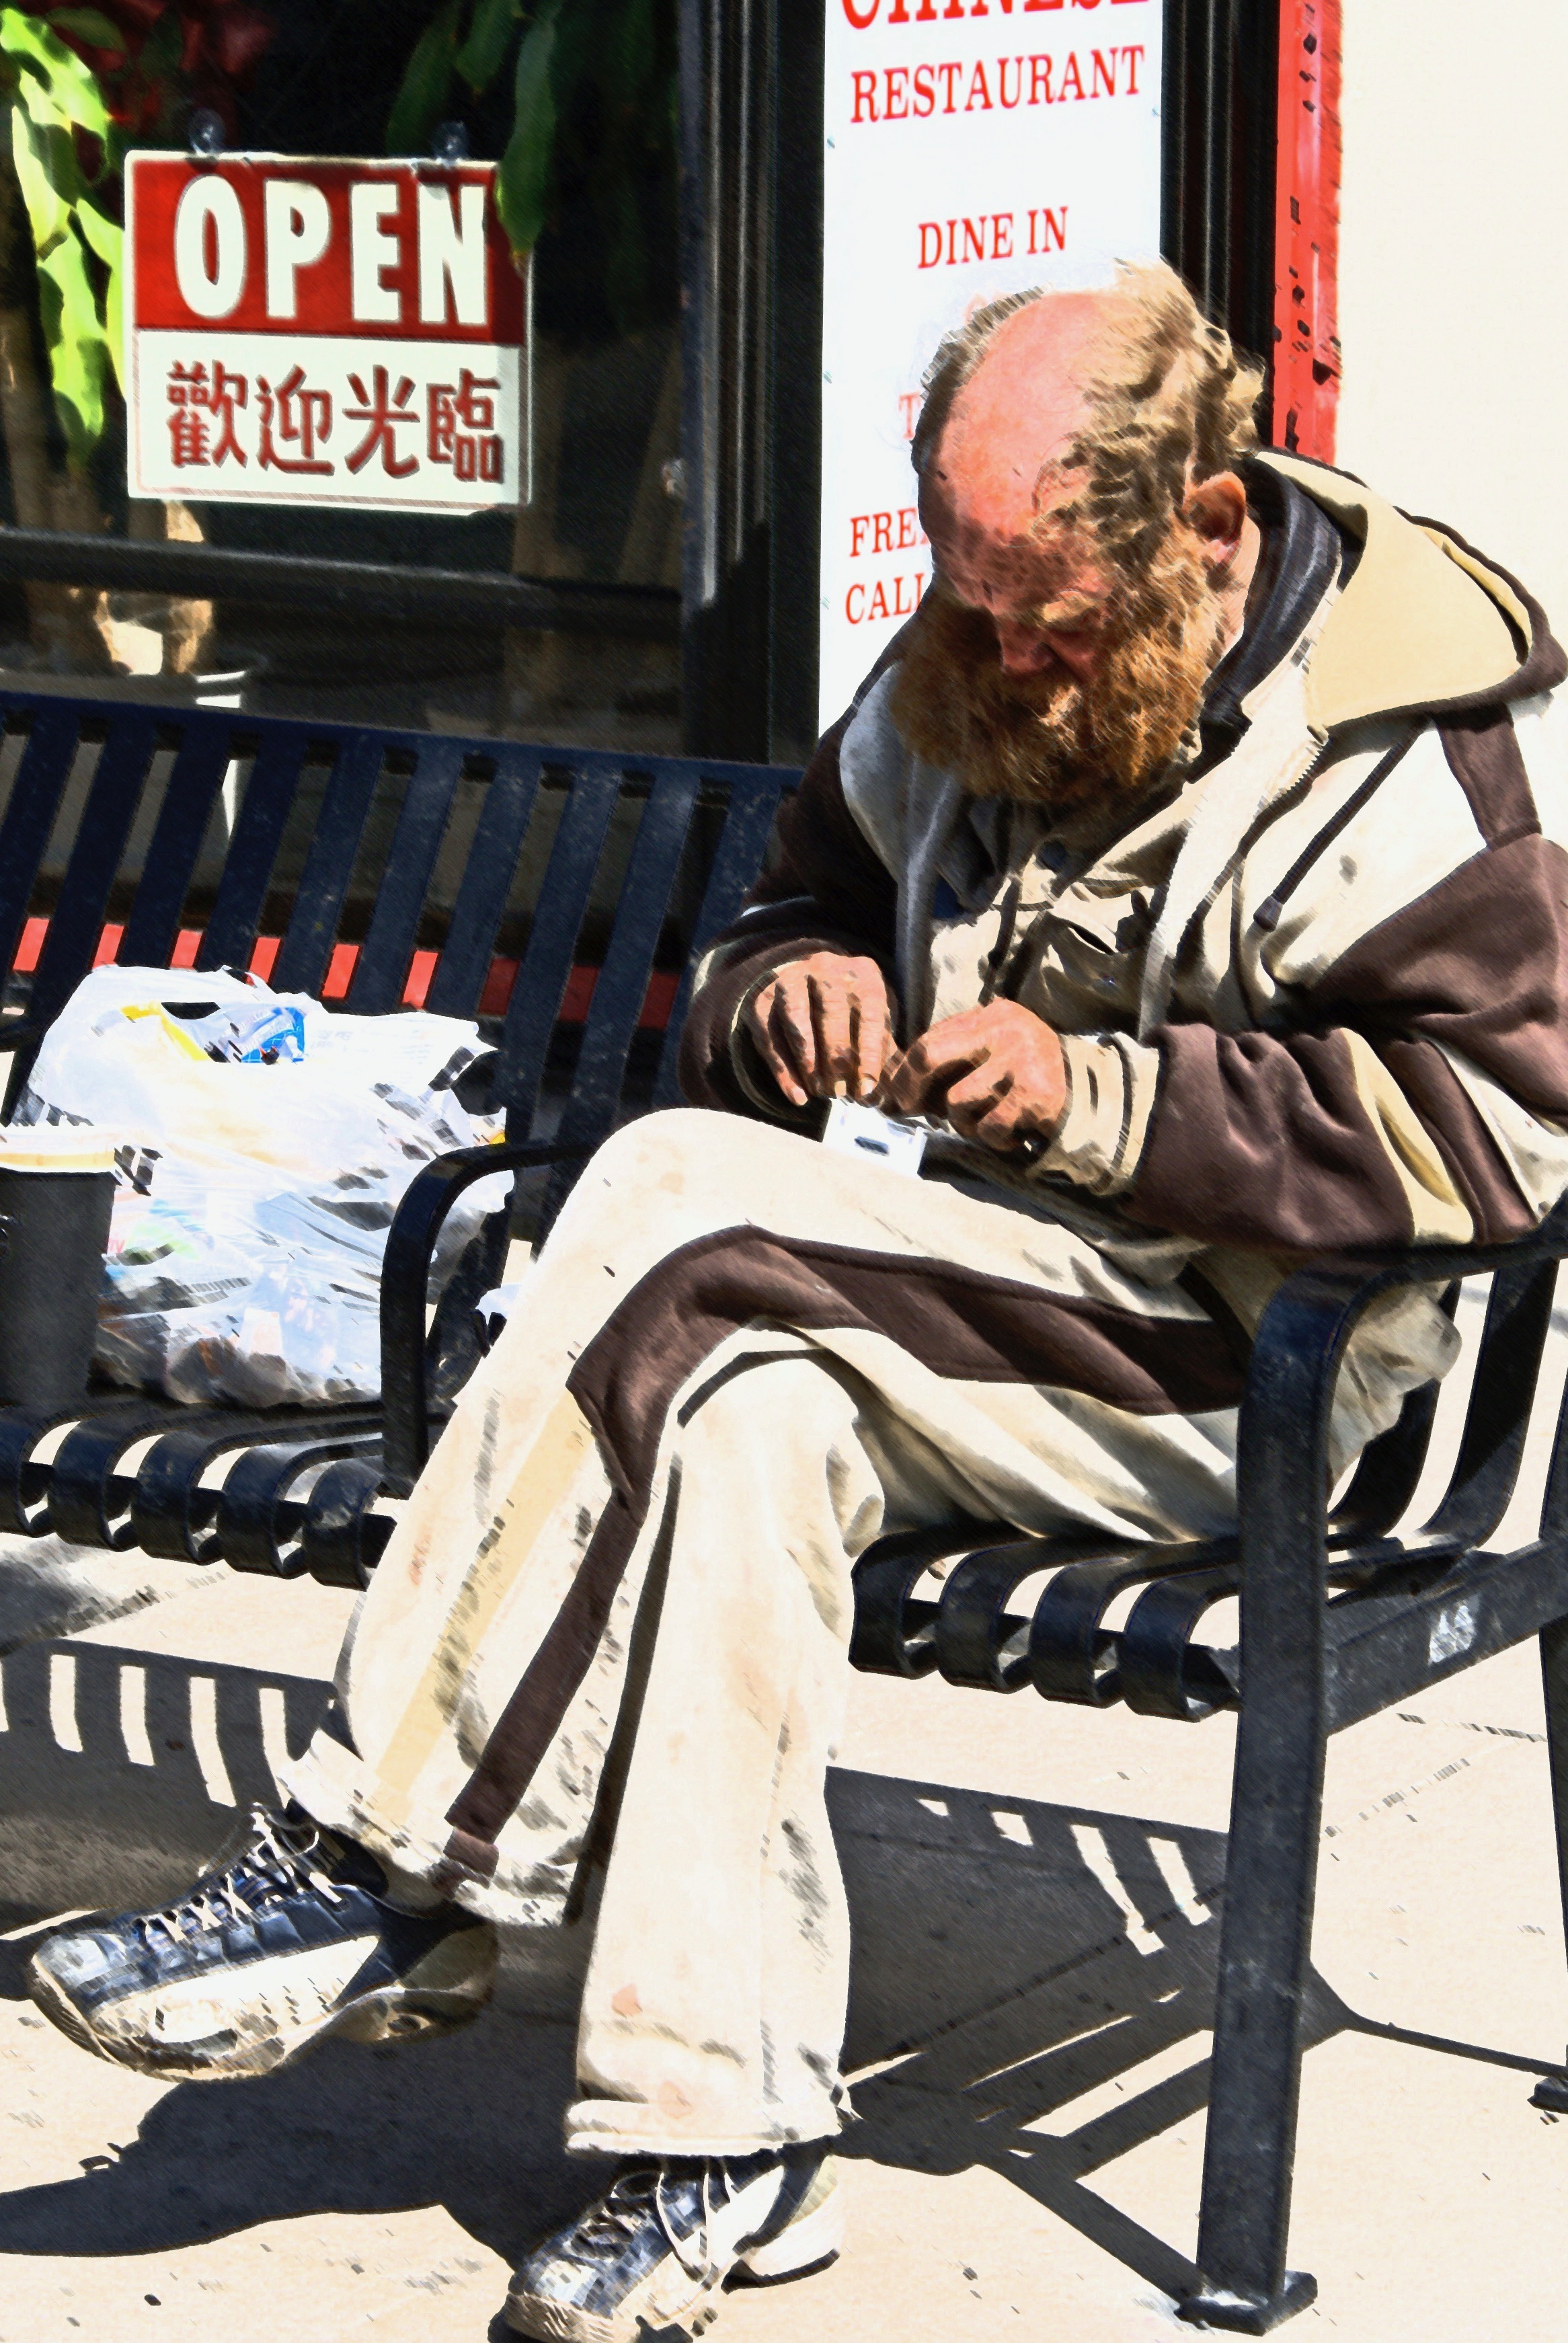 People Homeless FX DSC08758_2.jpg